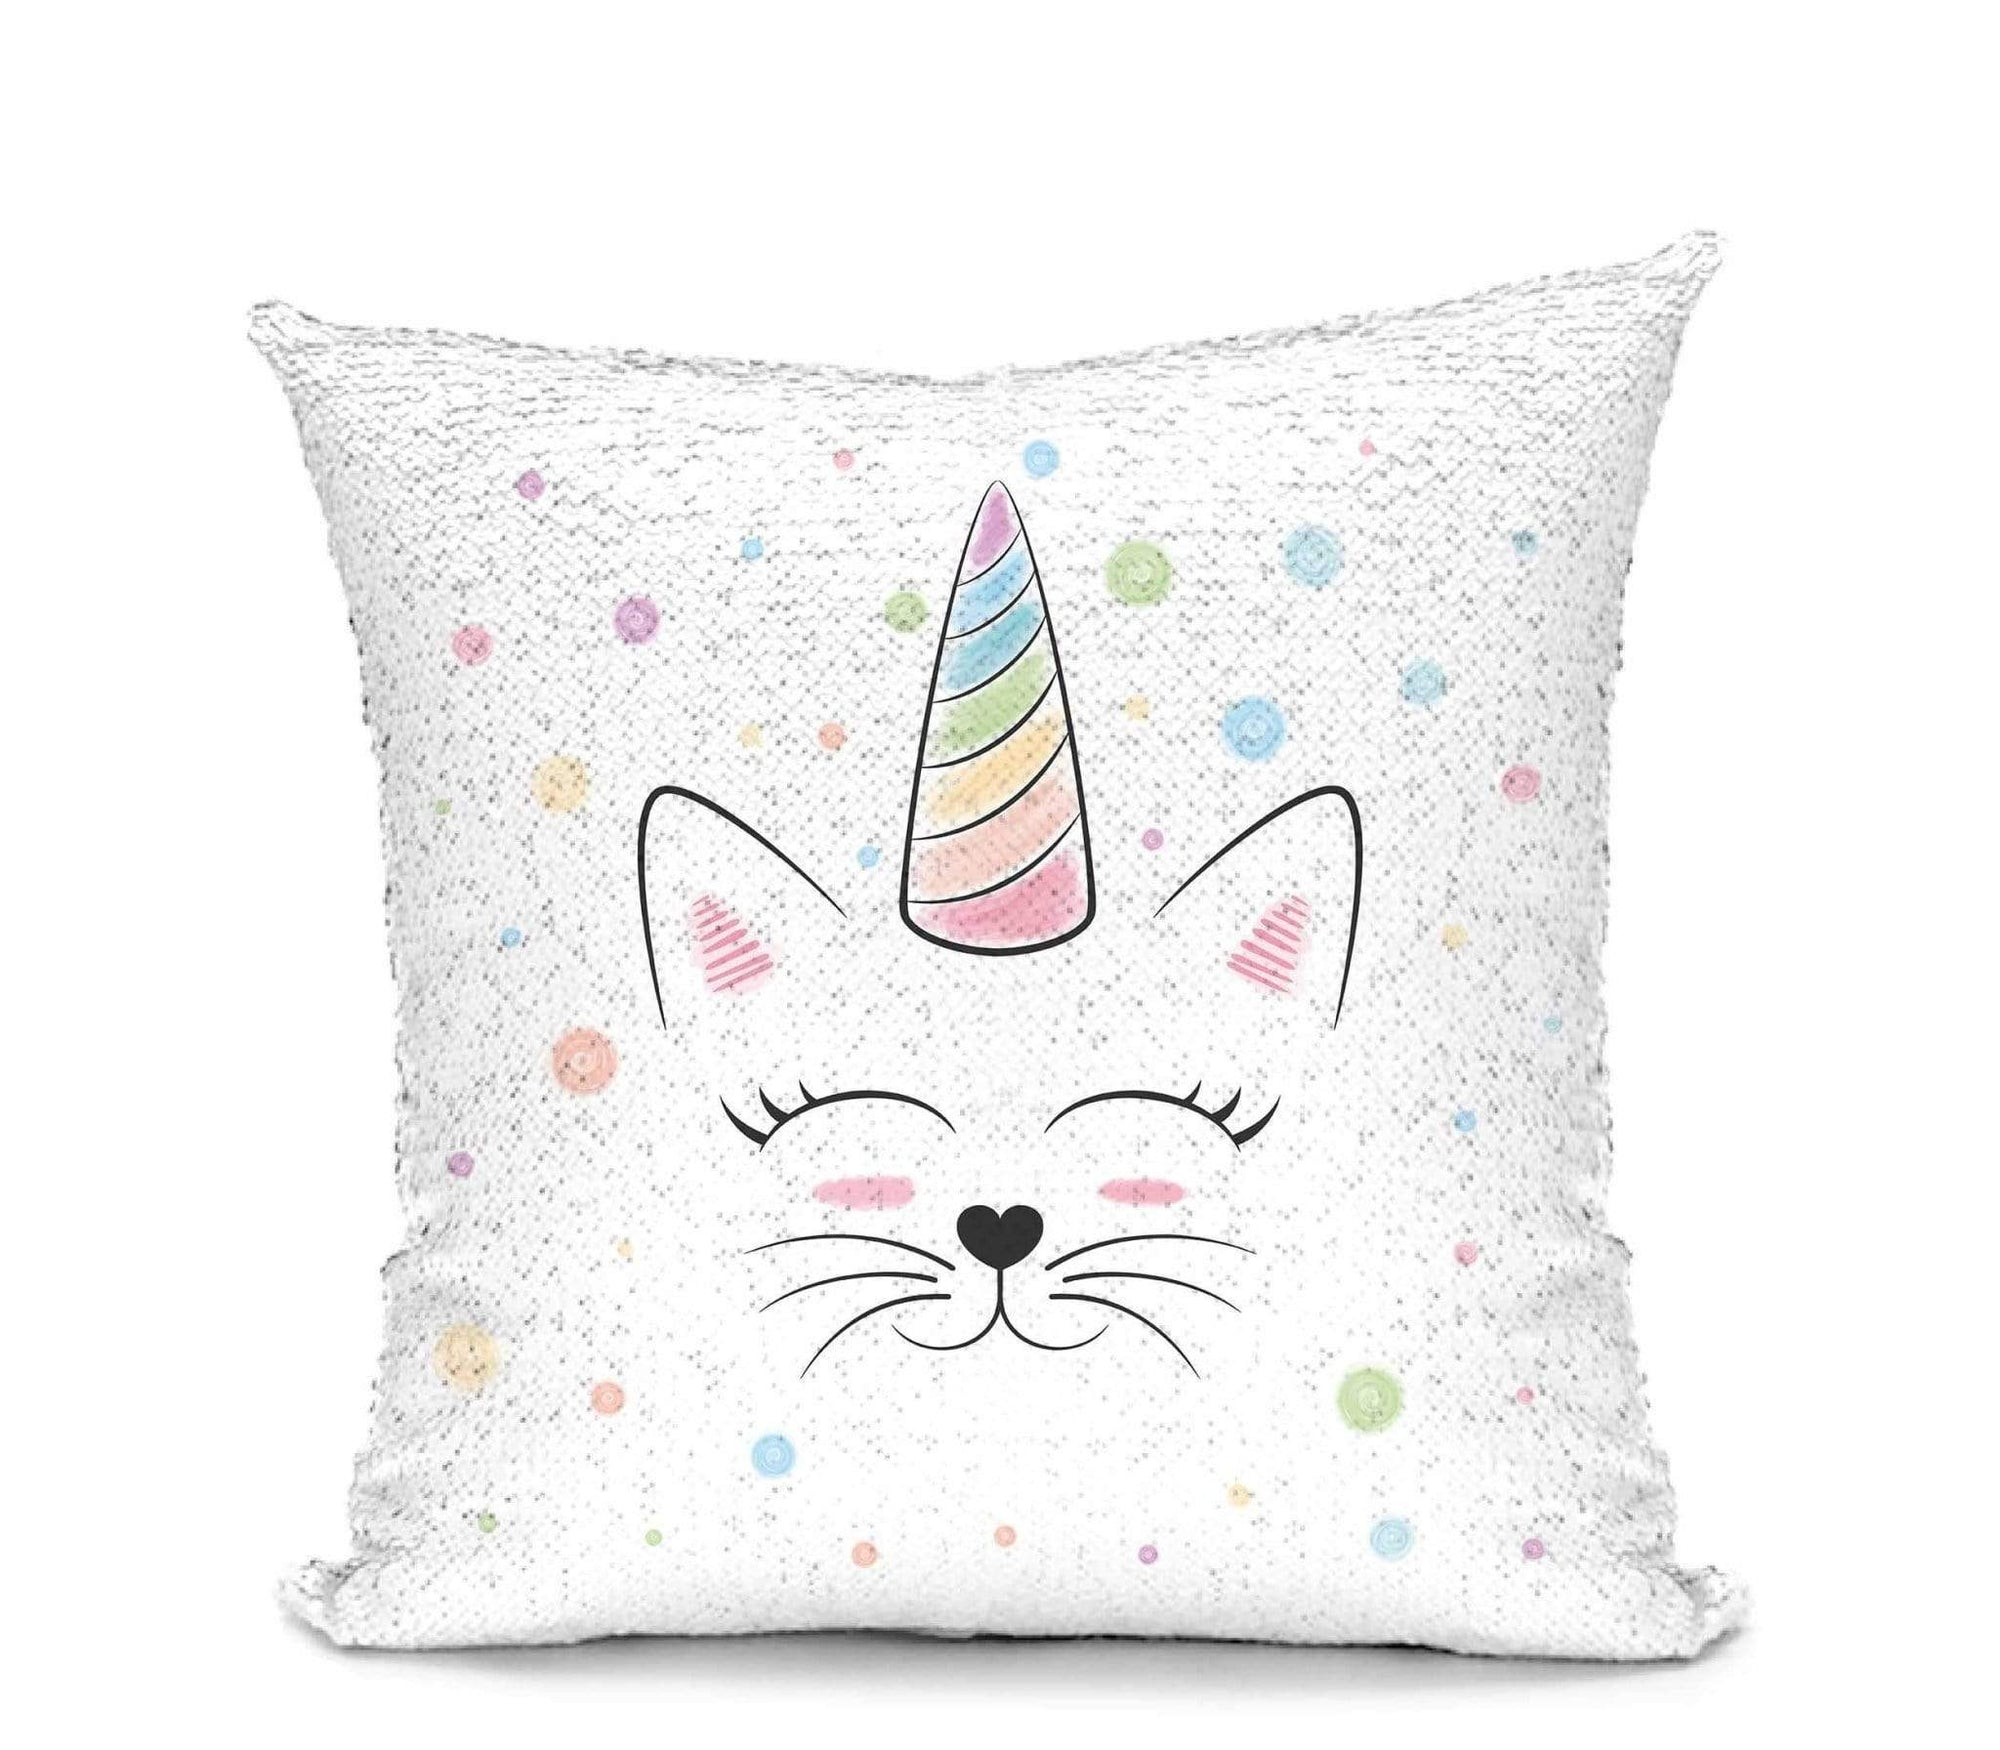 Leanne & Co. Pillow Caticorn Mermaid Sequin Pillow